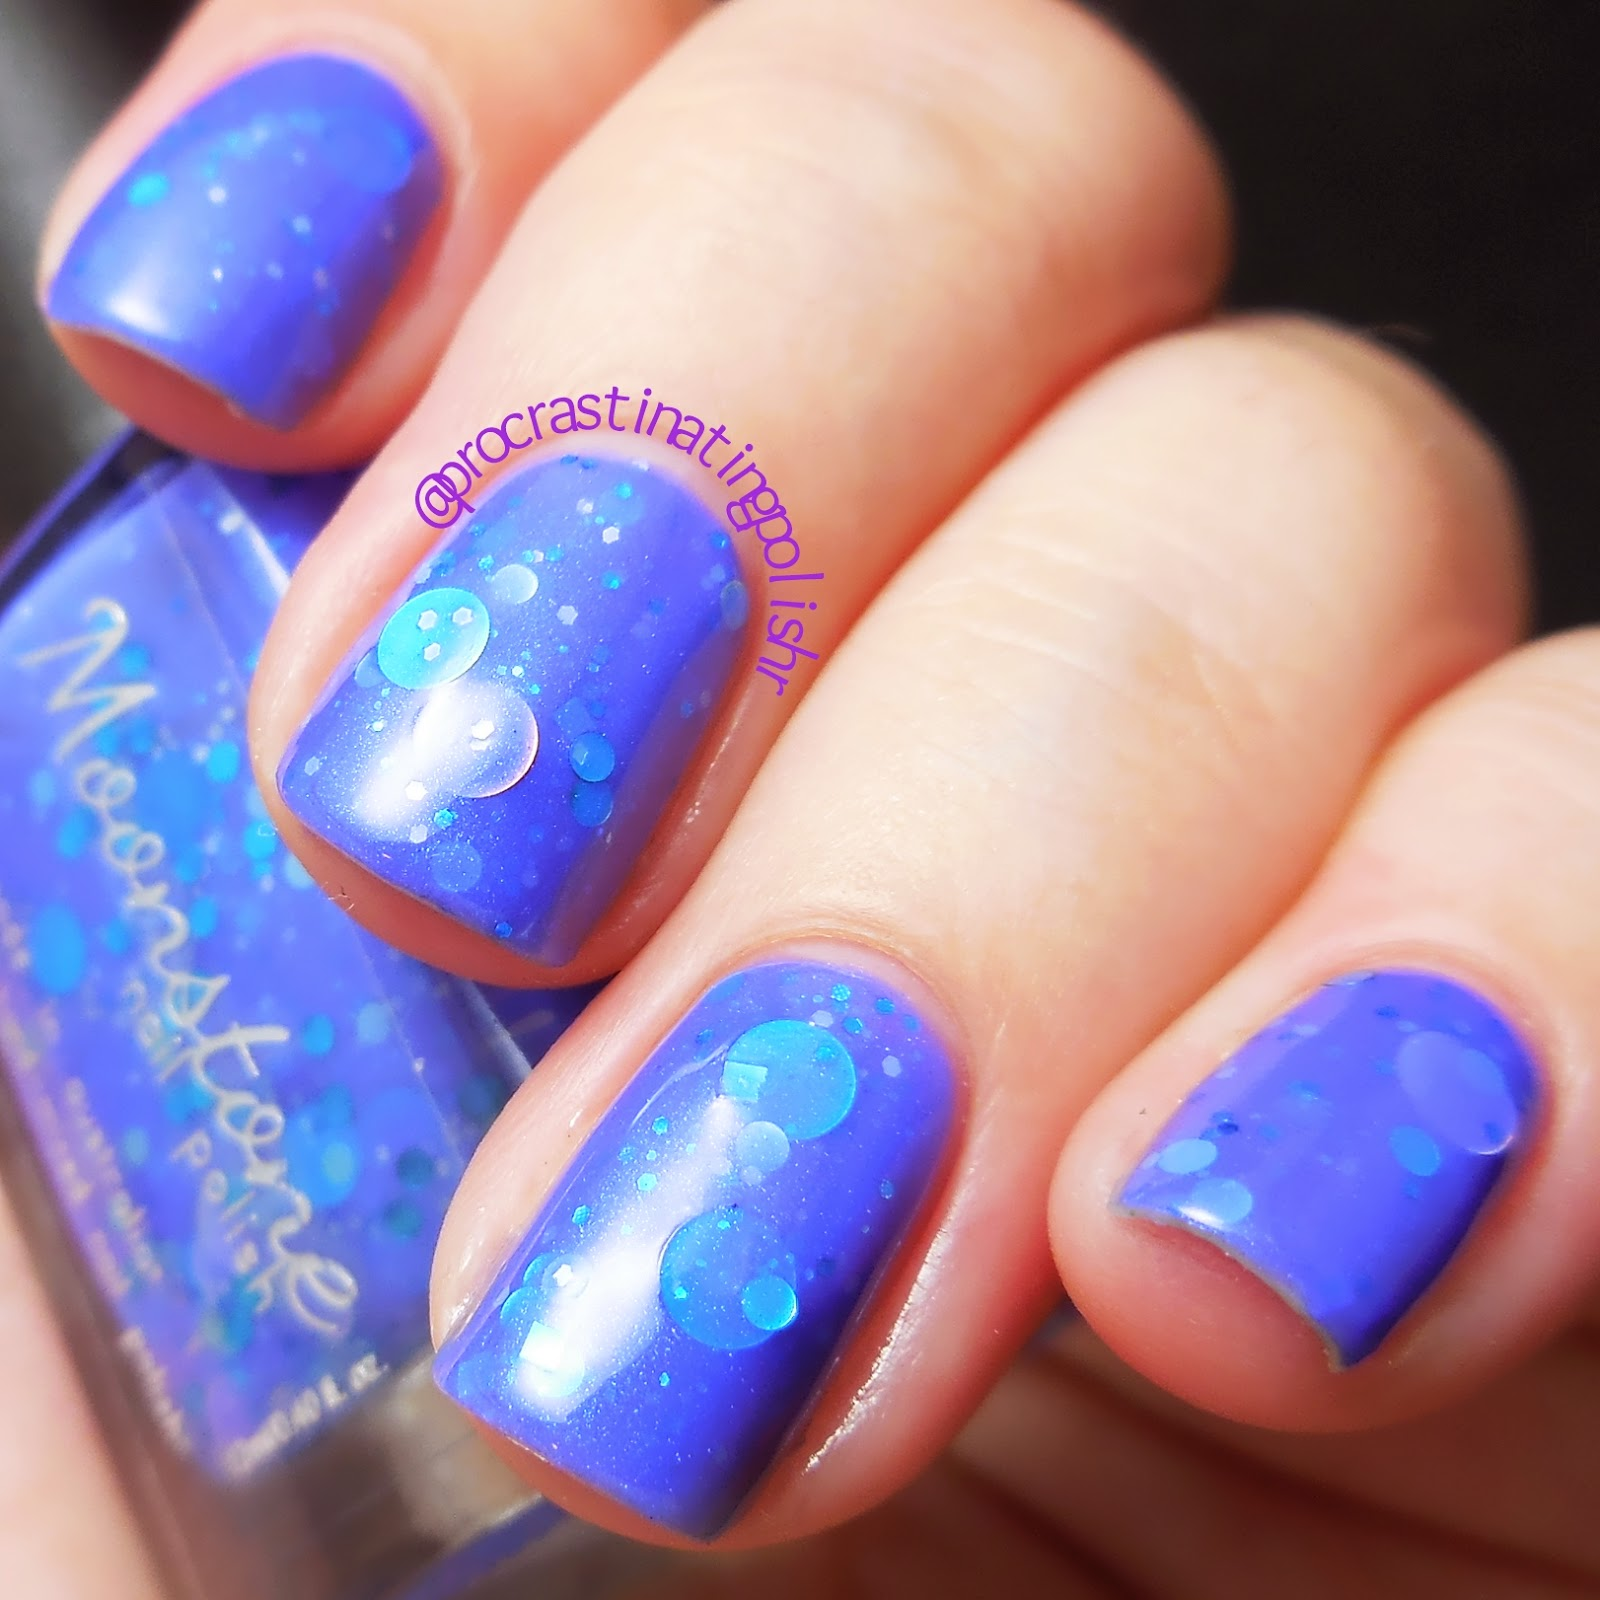 Moonstone Nail Polish - Bluebell Bubblegum